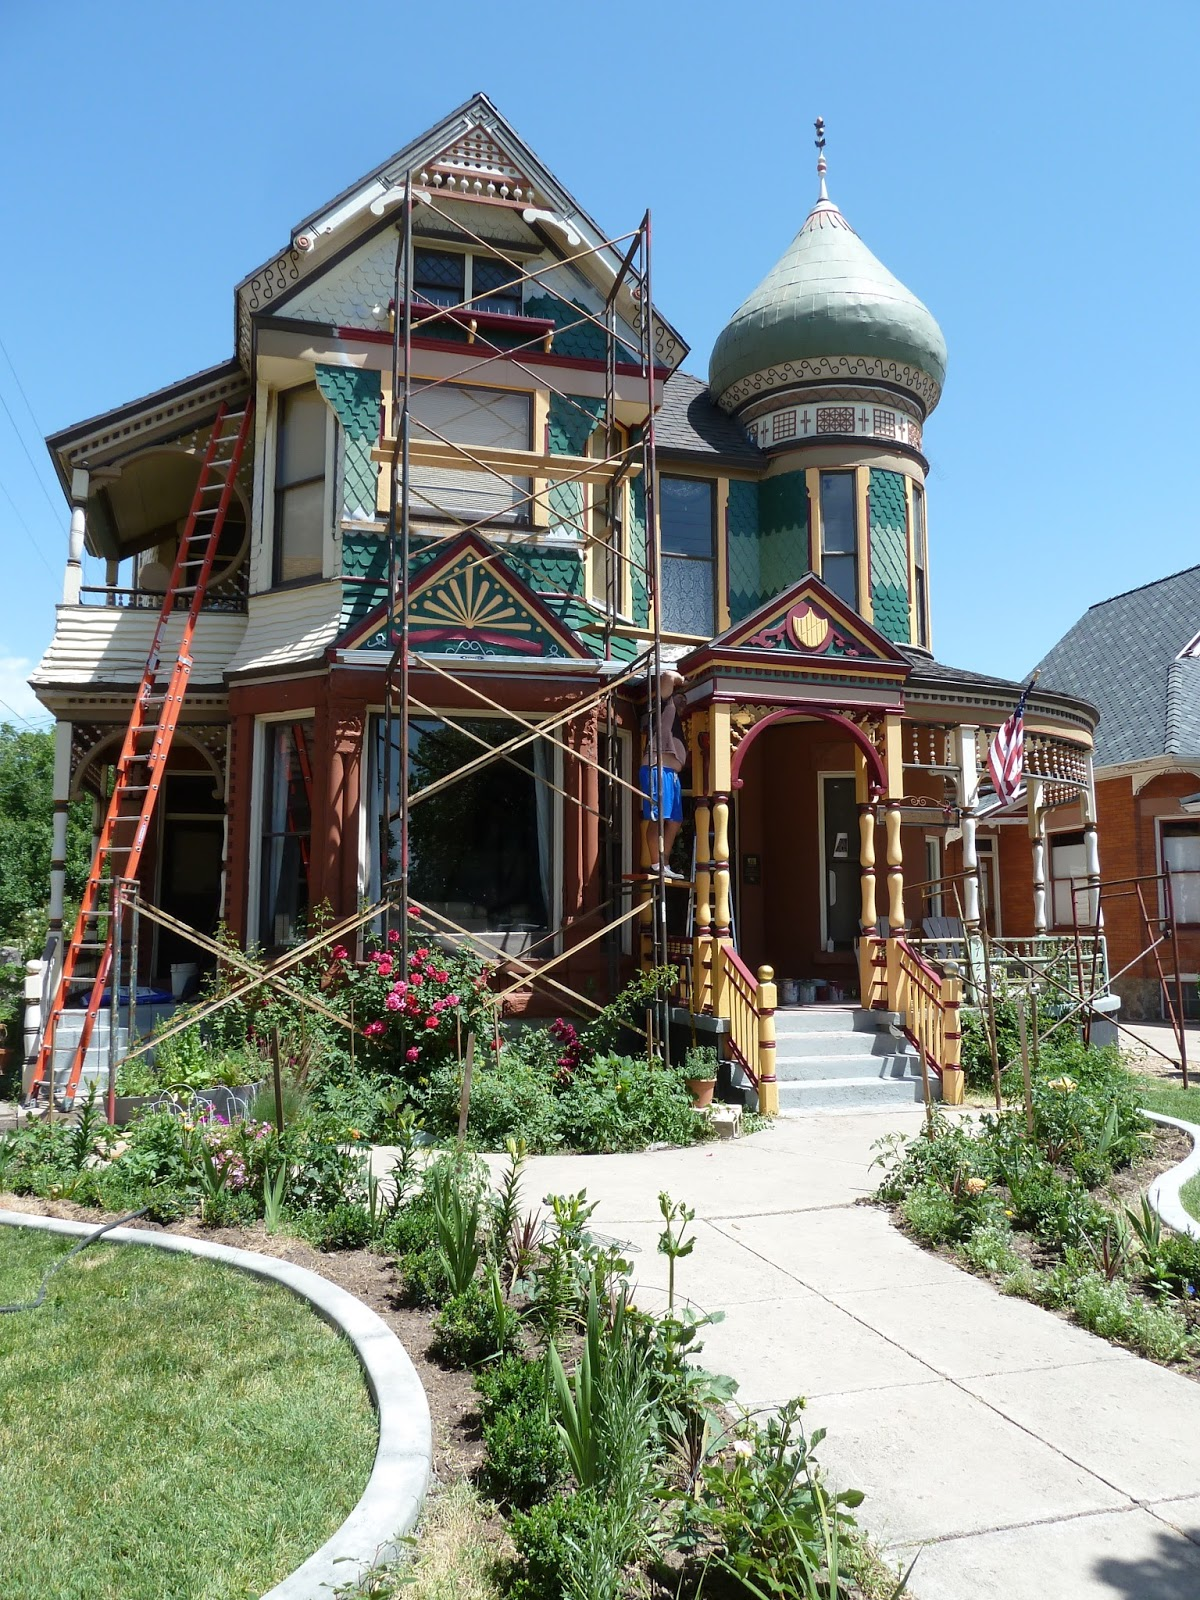 Cool House in Union Station's Neighborhood Spiffed Up